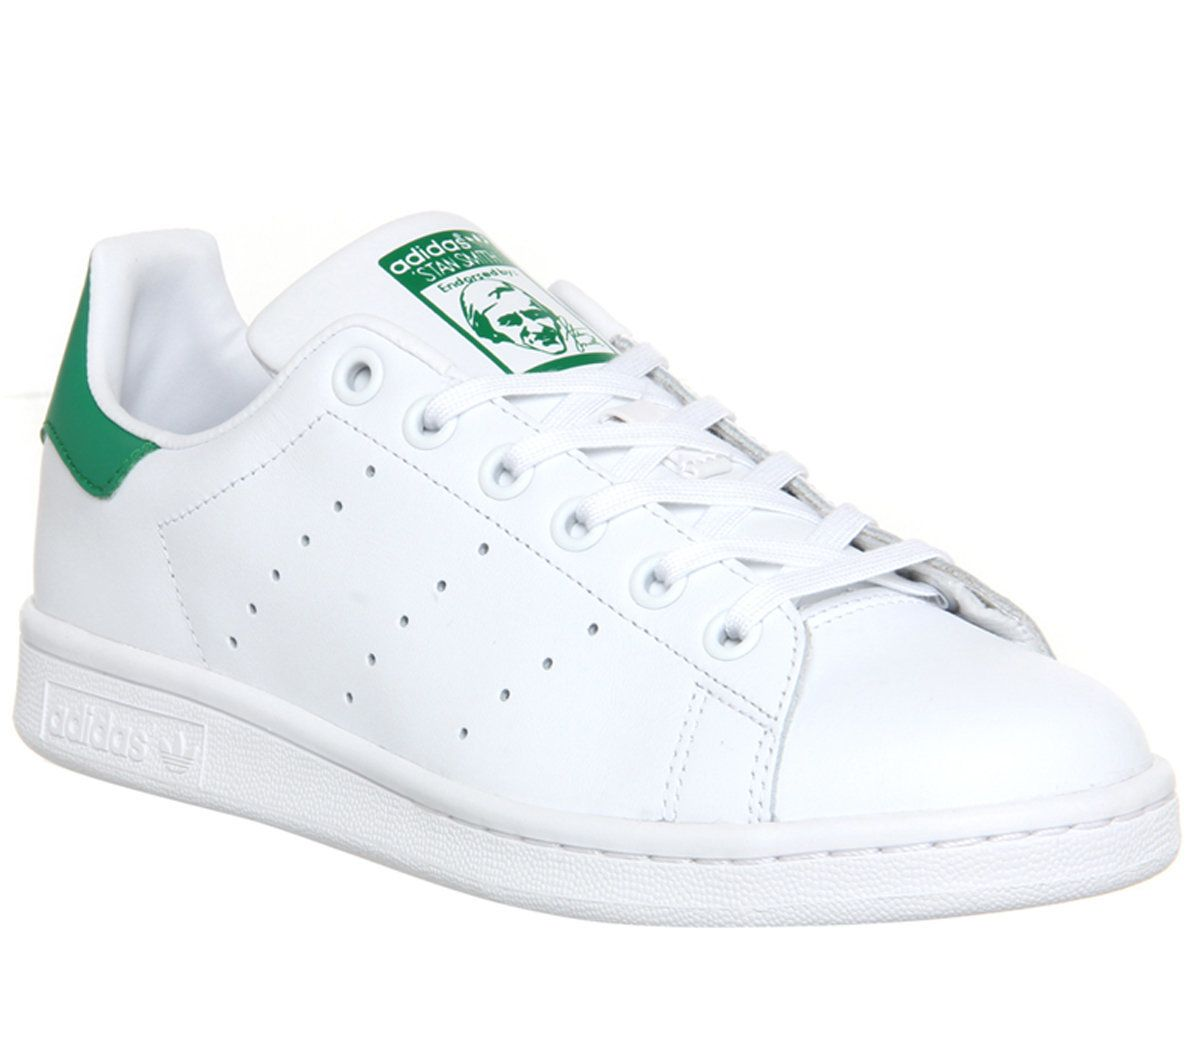 9 Of The Best White Trainers To Help